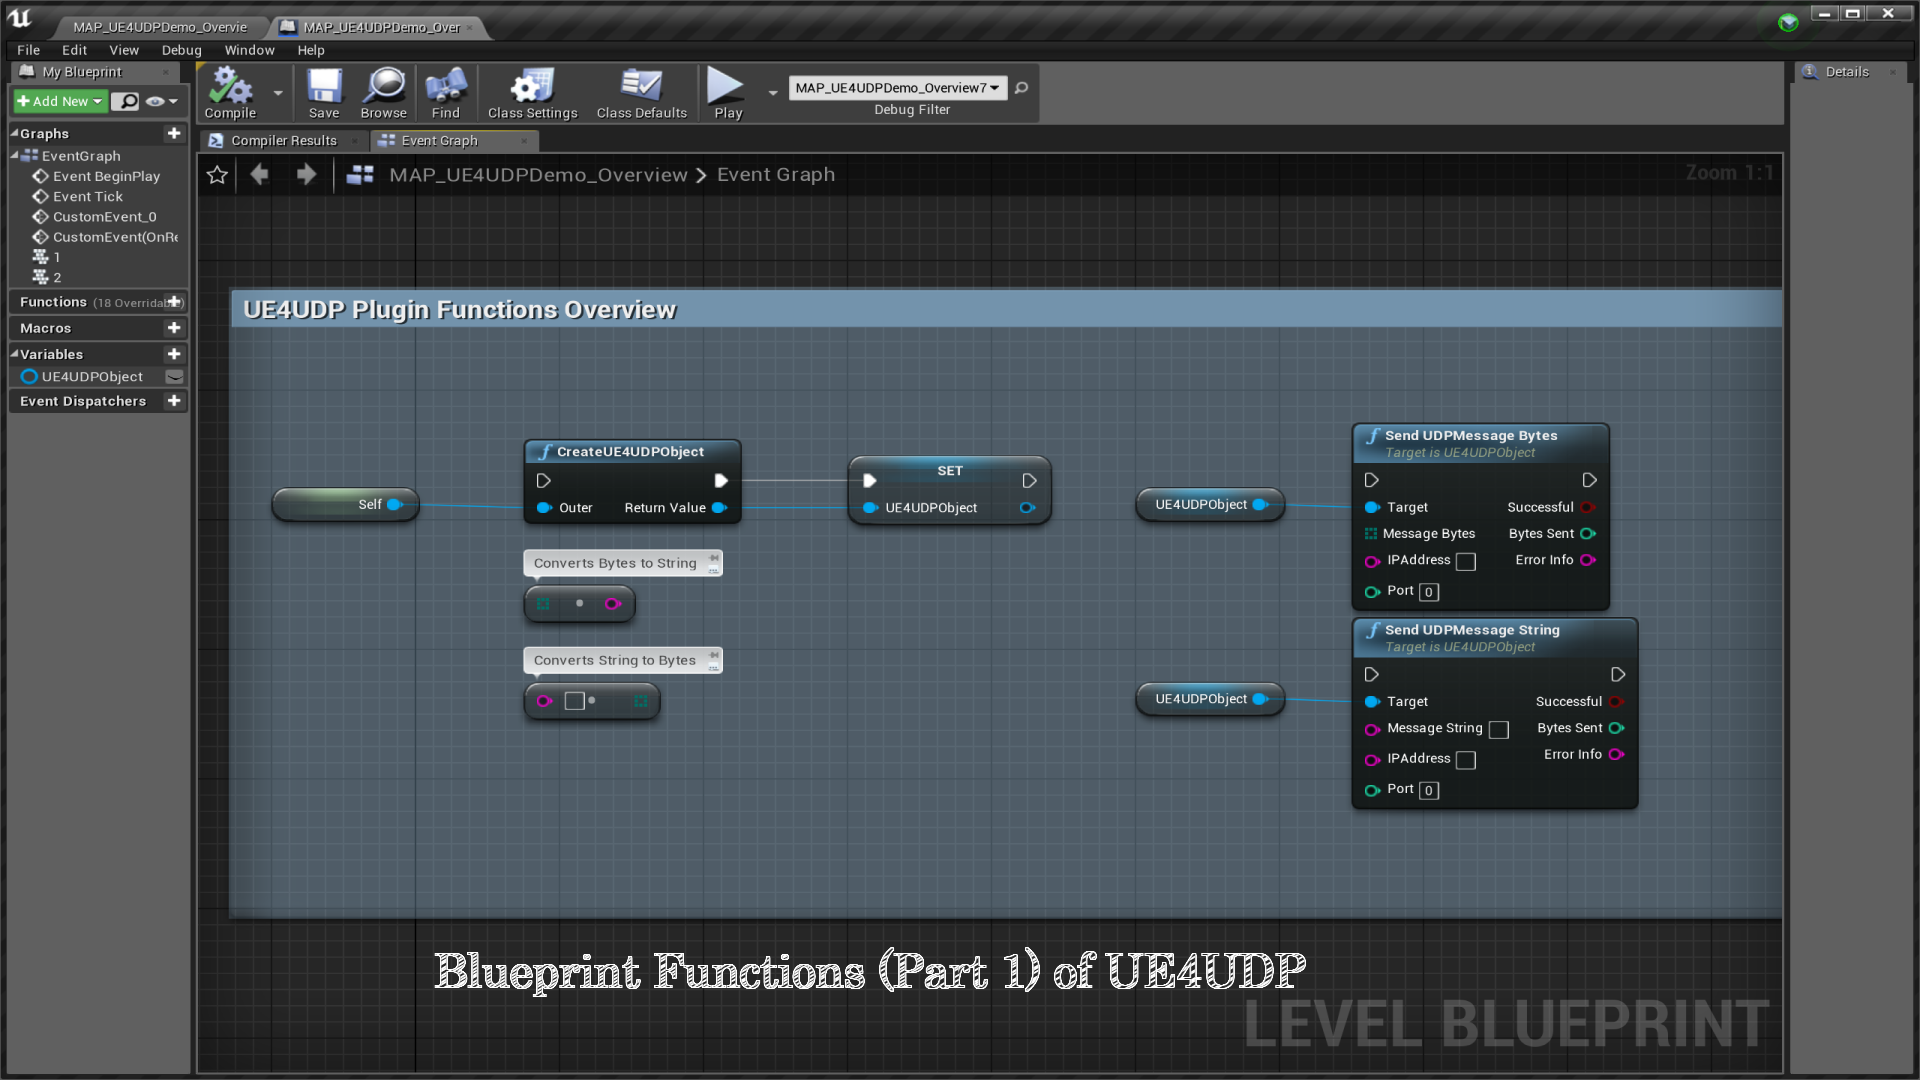 UE4UDP (UDP Feature For UE4) by LiamLewis in Code Plugins